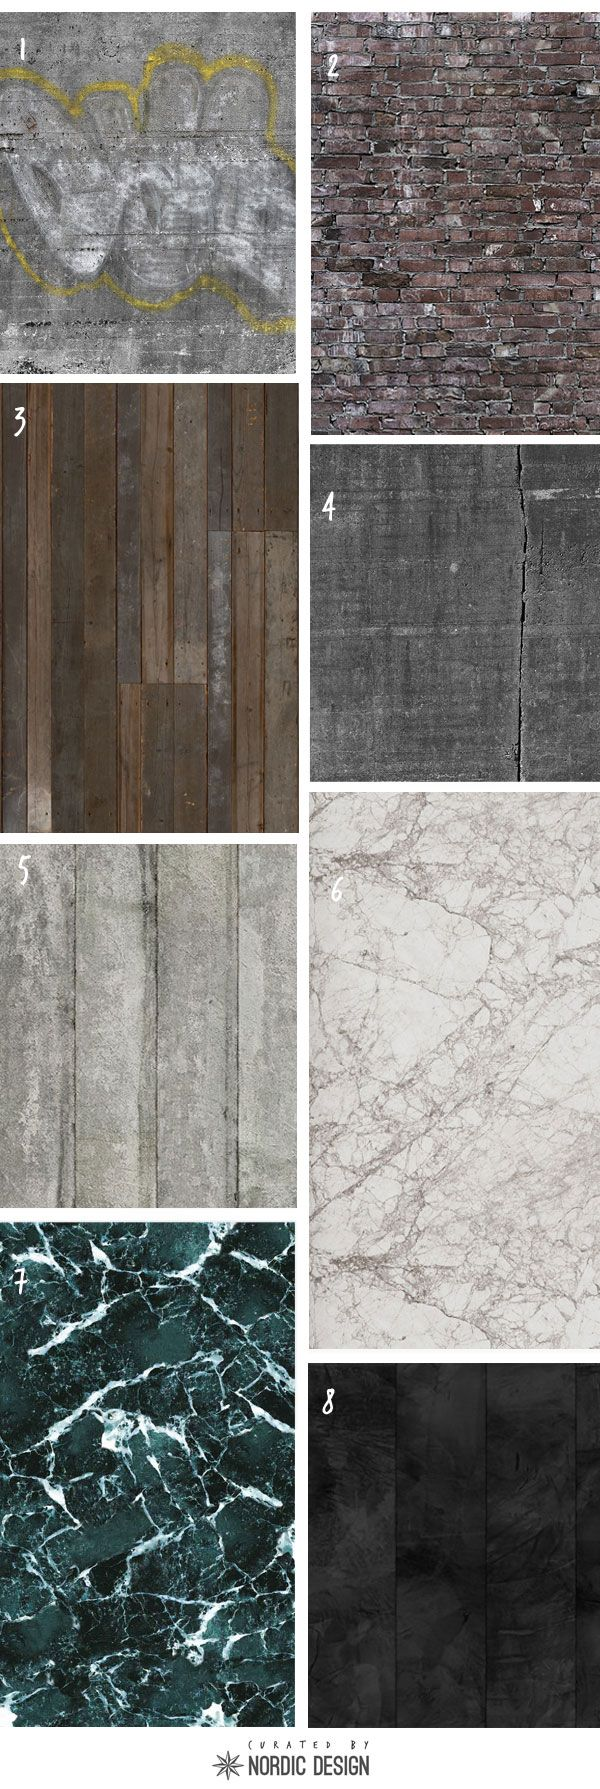 Curated: 8 Fantastic Wallpaper for a Stylish and Edgy Look - NordicDesign